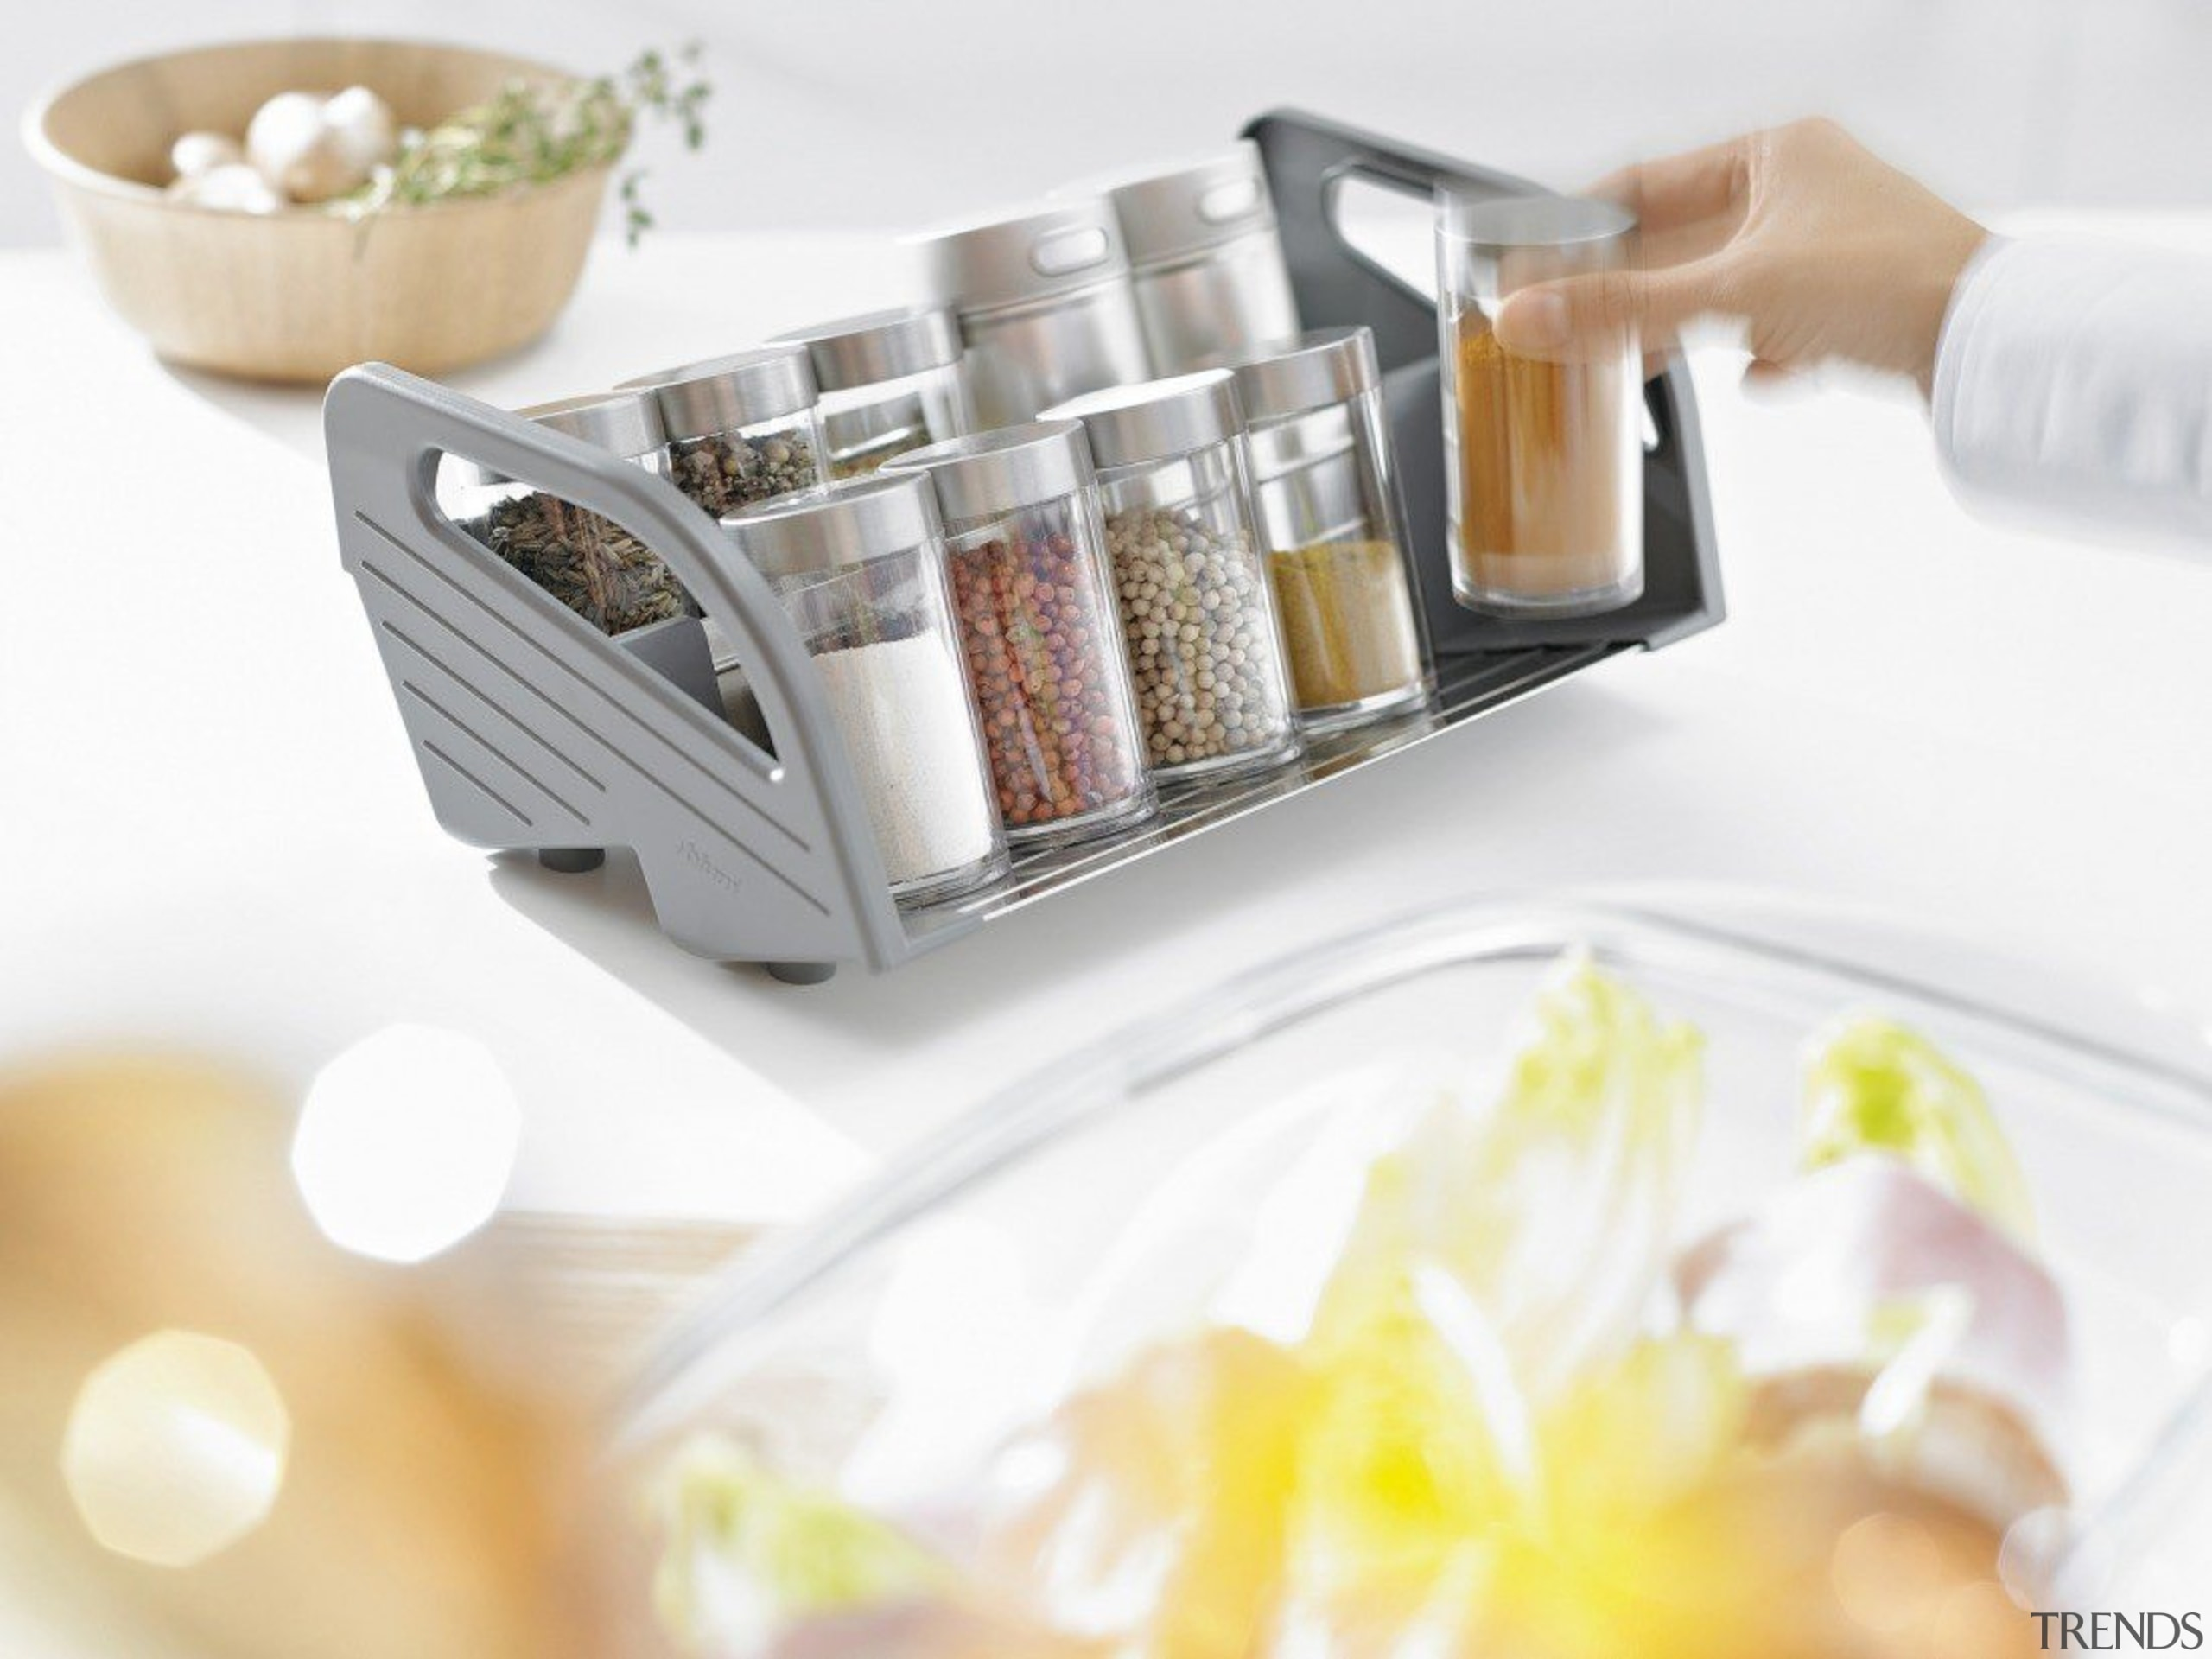 ORGA-LINE kitchen accessories – so many practical advantages. product, tableware, white